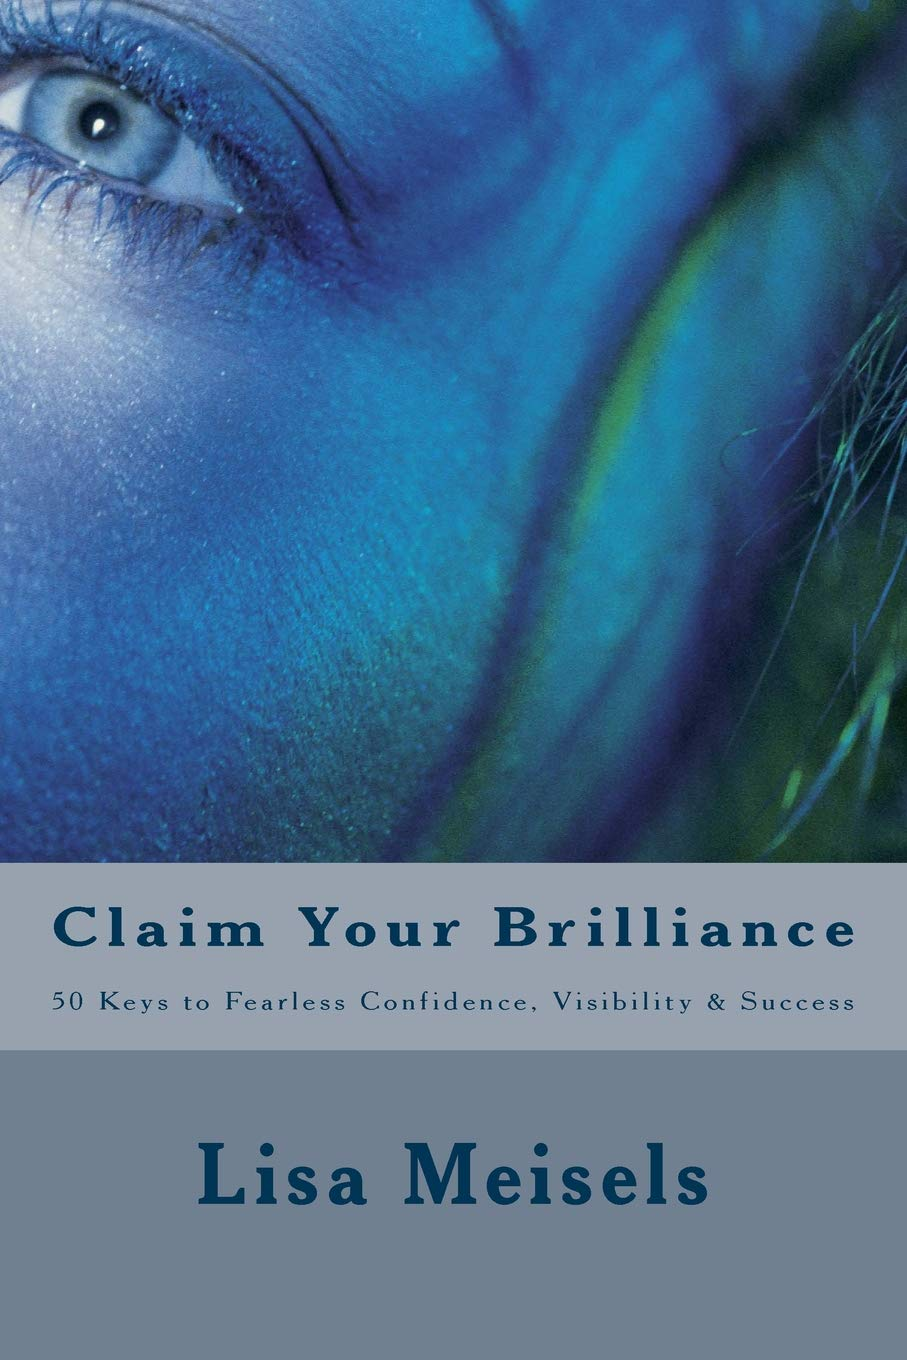 Claim Your Brilliance: 50 Keys to Fearless Confidence, Visibility & Success PDF